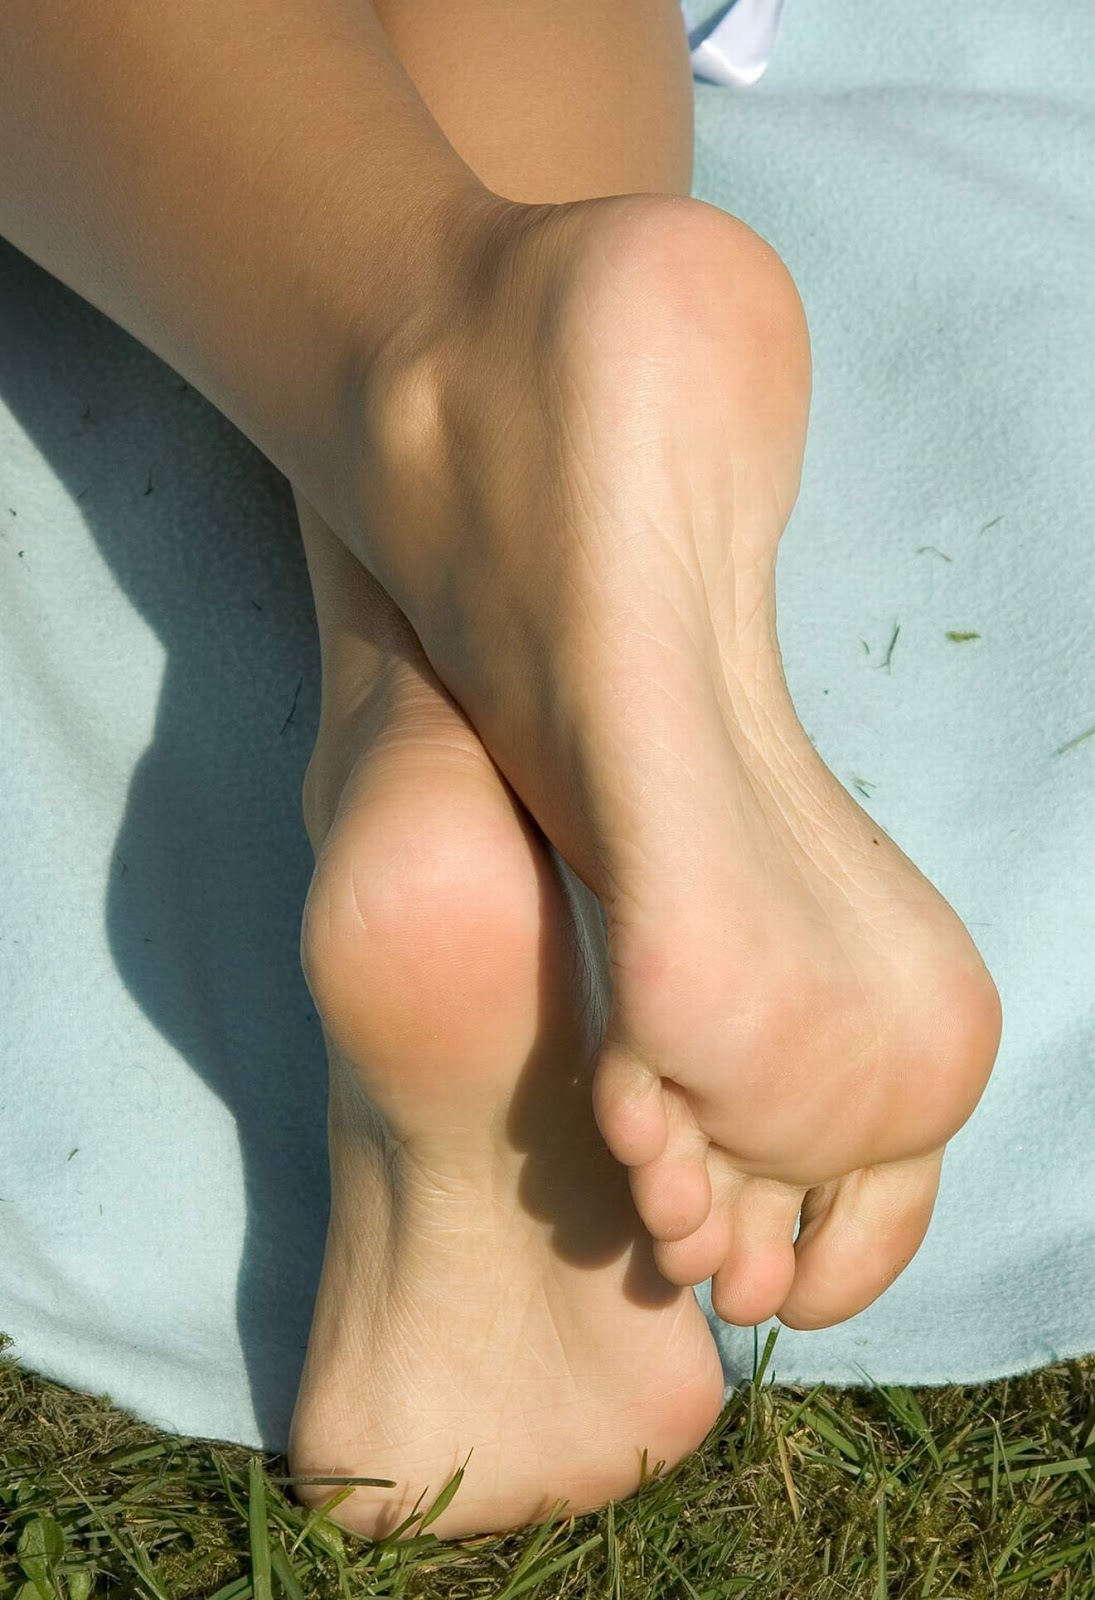 The female asiian foot fetish IT..that